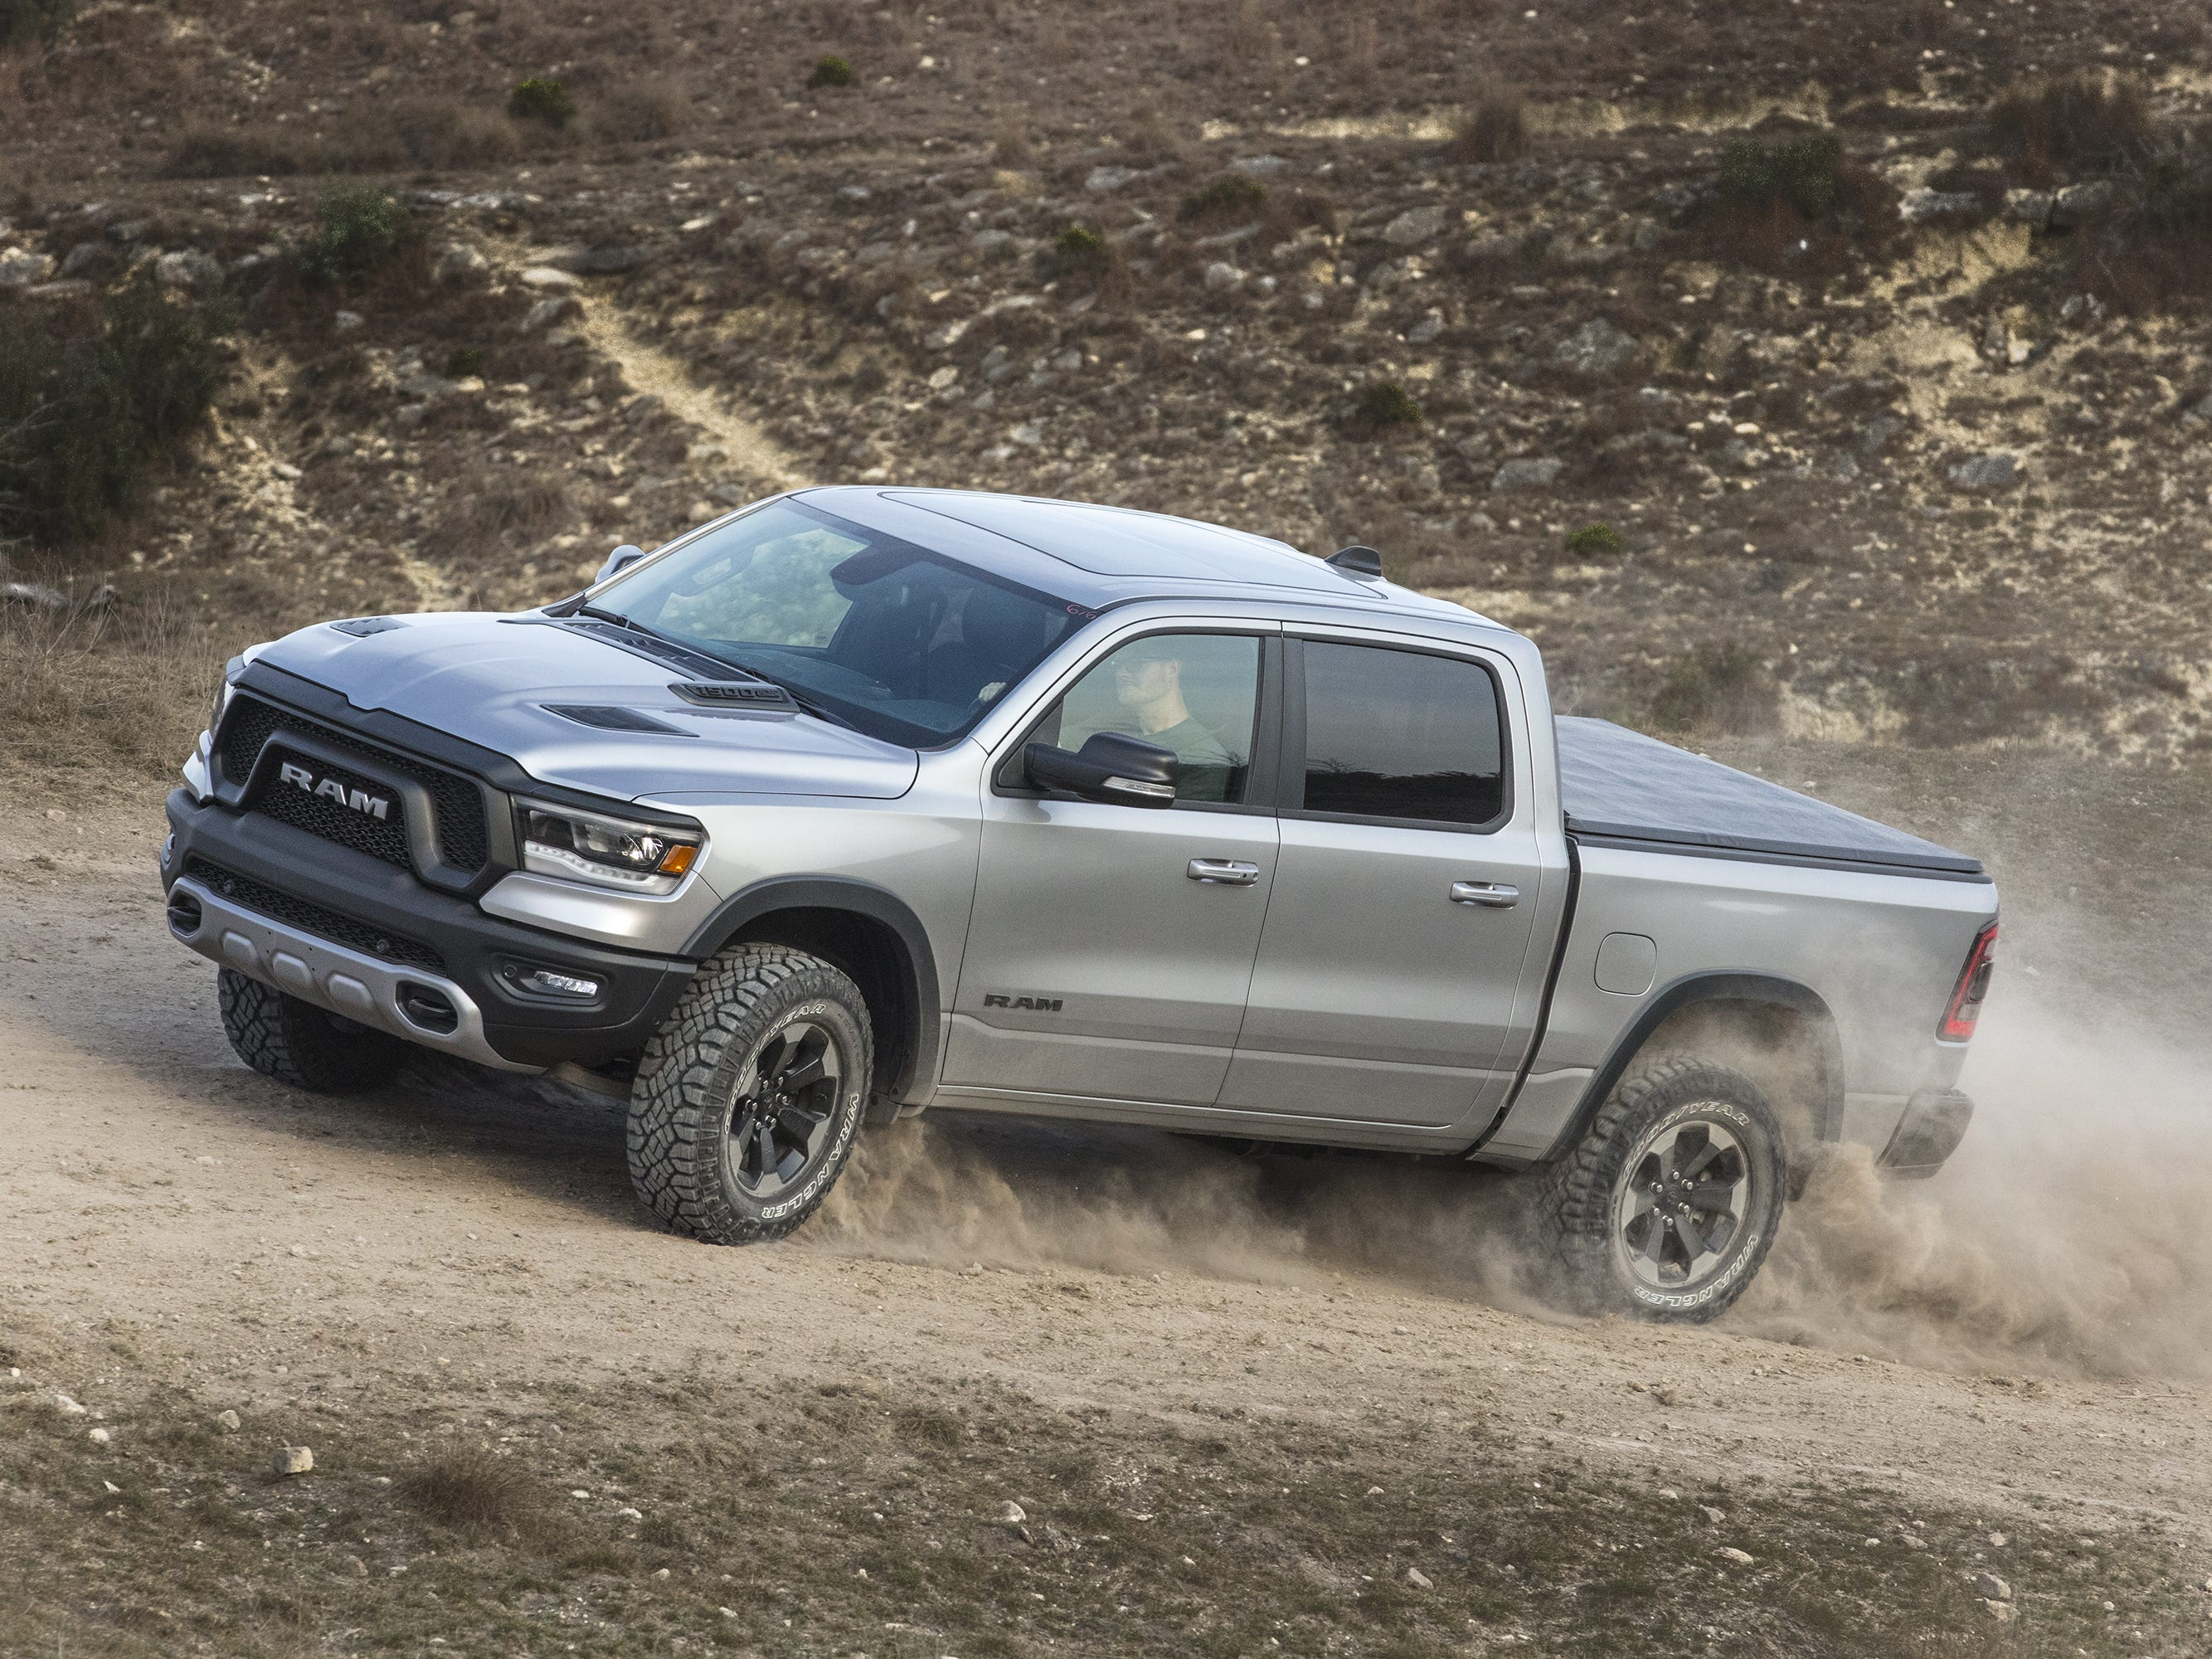 Truck of the Year: The 2019 Ram 1500, seen in the Rebel trim model.